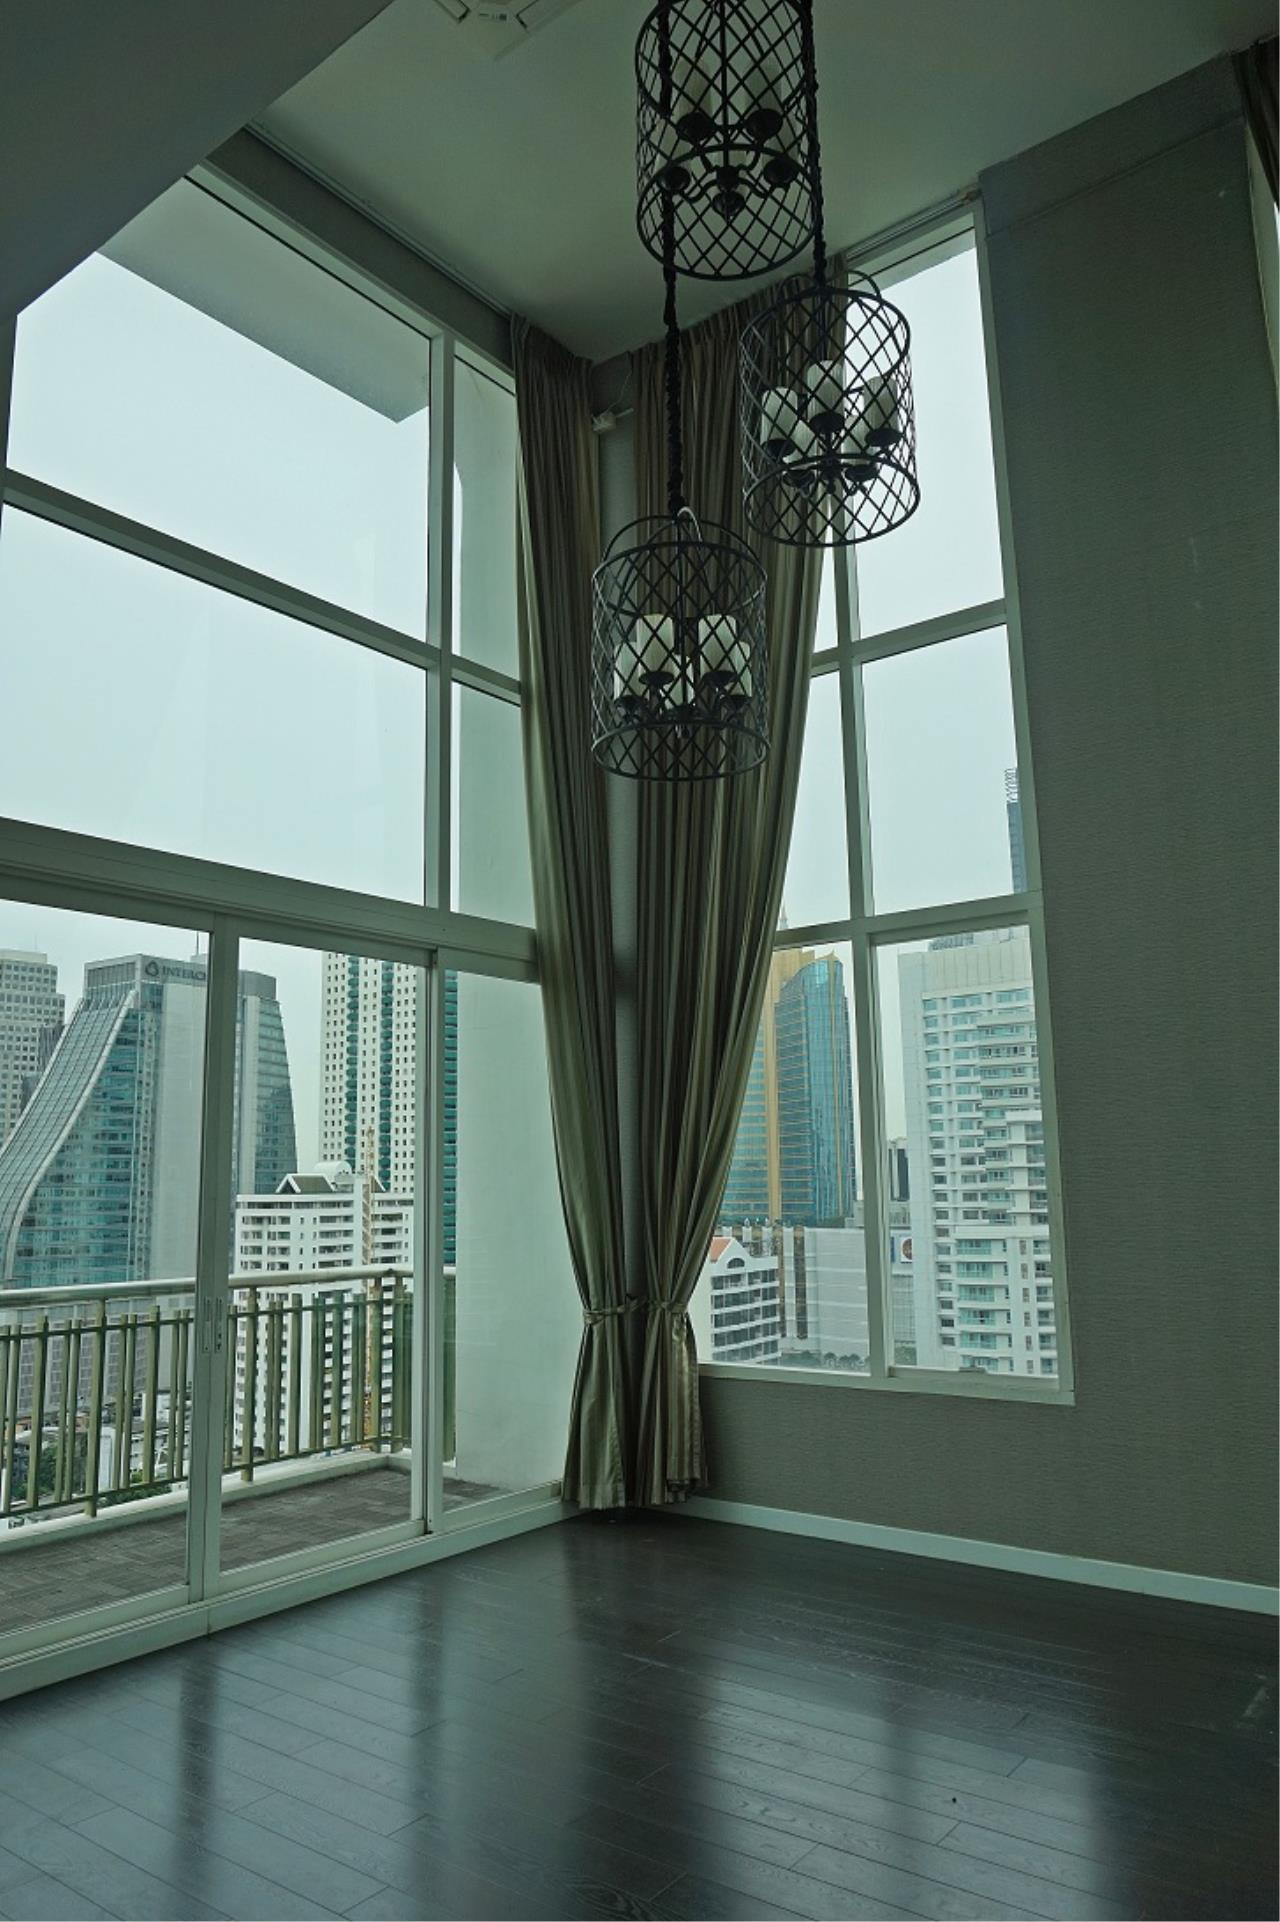 Right Move Thailand Agency's CS1971 Penthouse Duplex Wind Sukhumvit 23 For Sale 35,000,000 THB 3 Bedrooms 242 Sqm 2